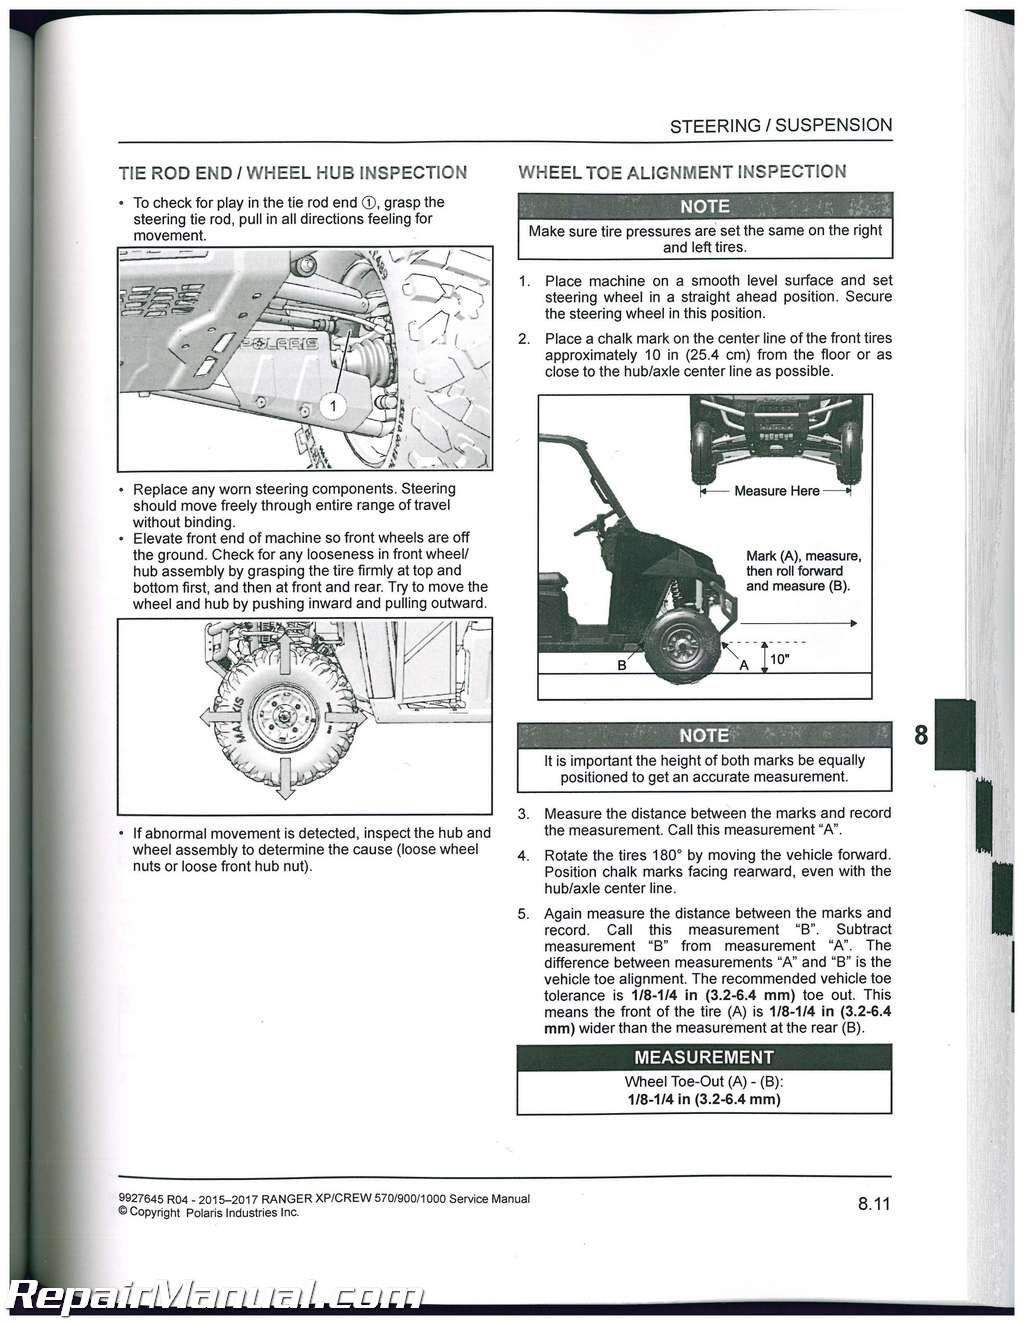 2015 polaris ranger 900 xp parts manual